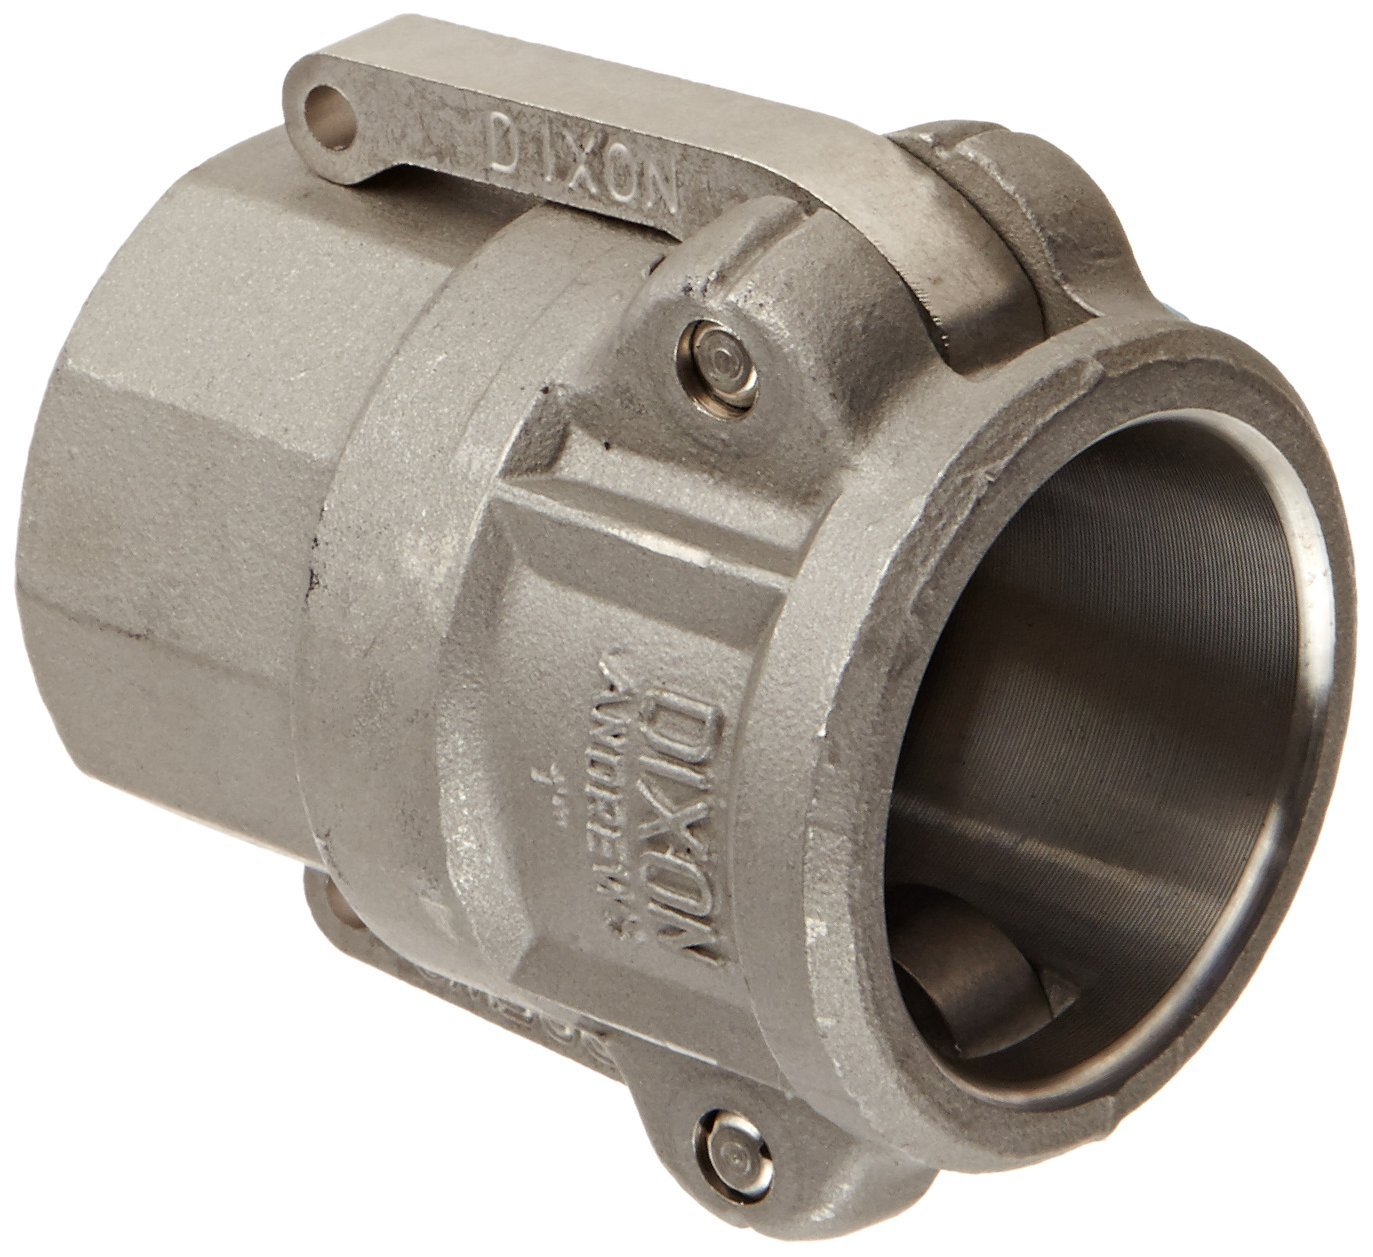 Dixon 100-D-SS Stainless Steel 316 Type D Cam and Groove Hose Fitting, 1'' Socket x 1'' NPT Female